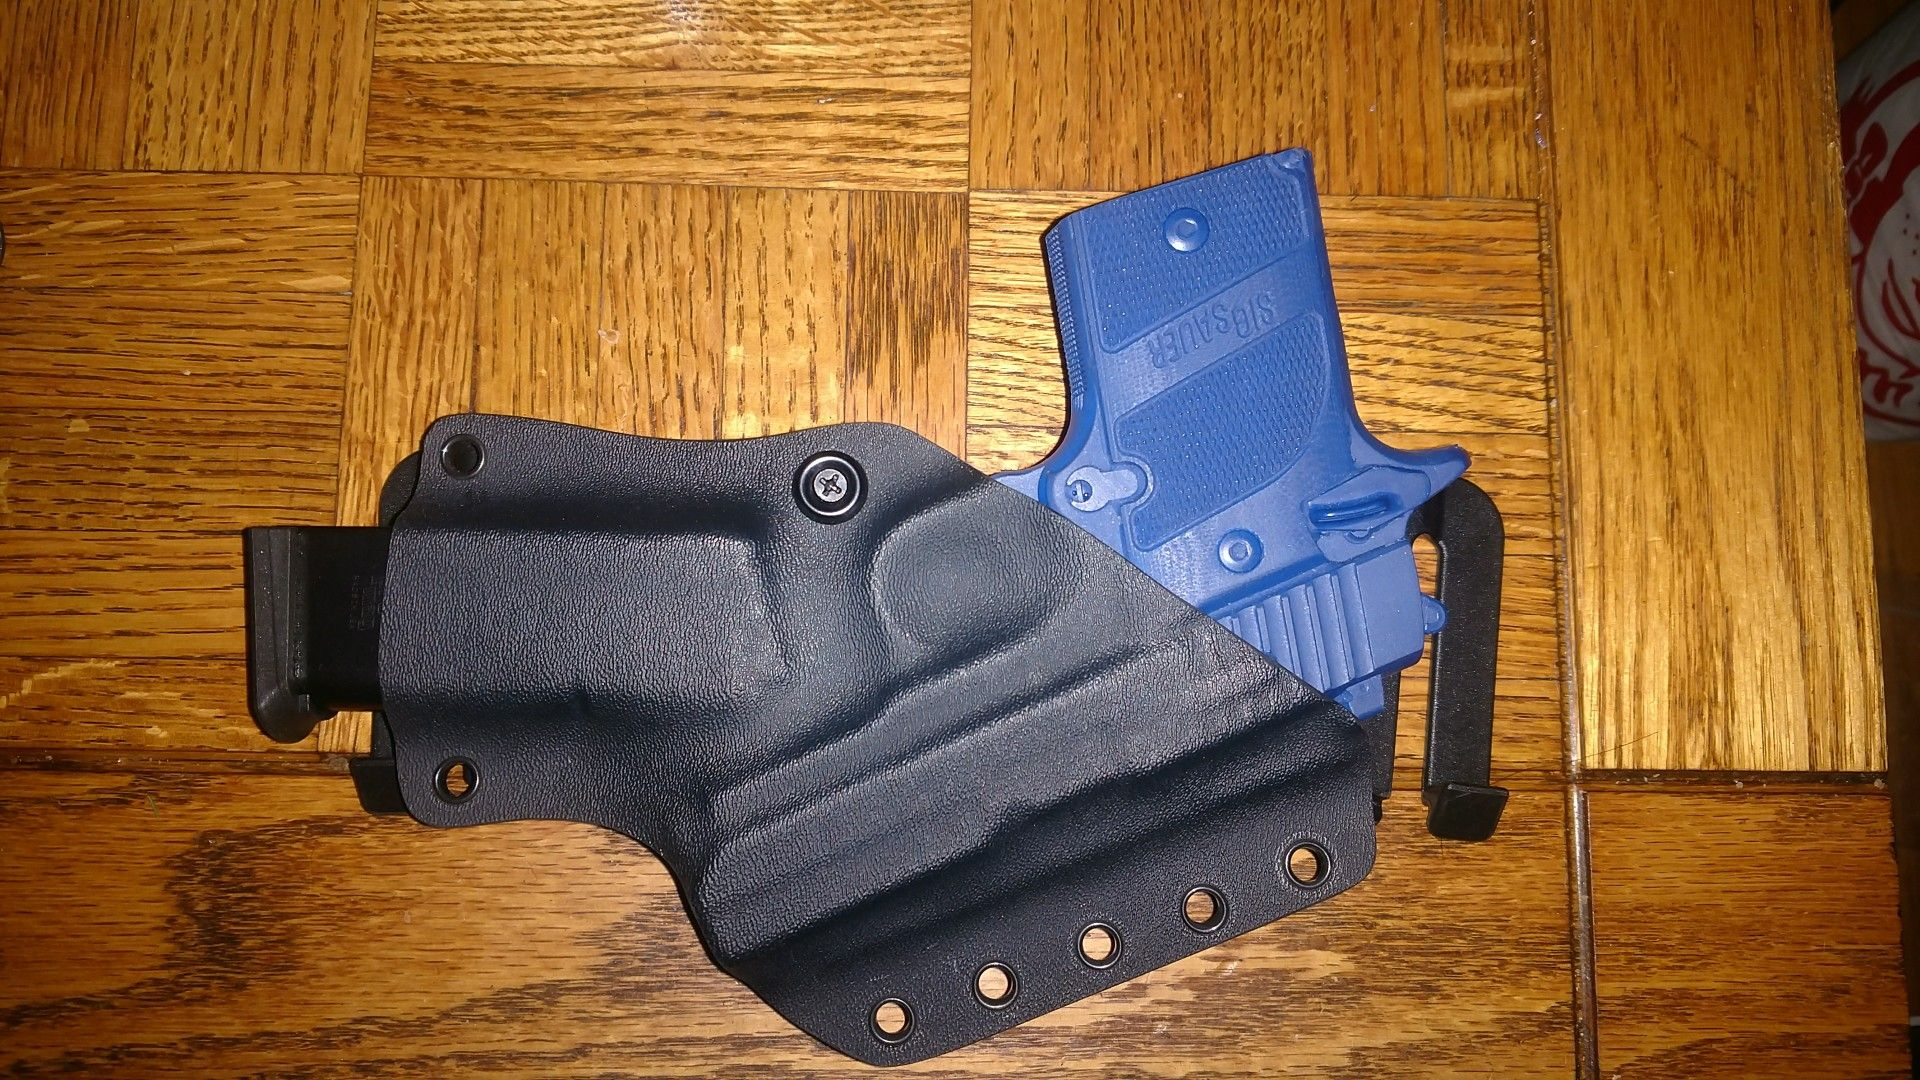 Custom Kydex Small Of Back holster with magazine pouch for